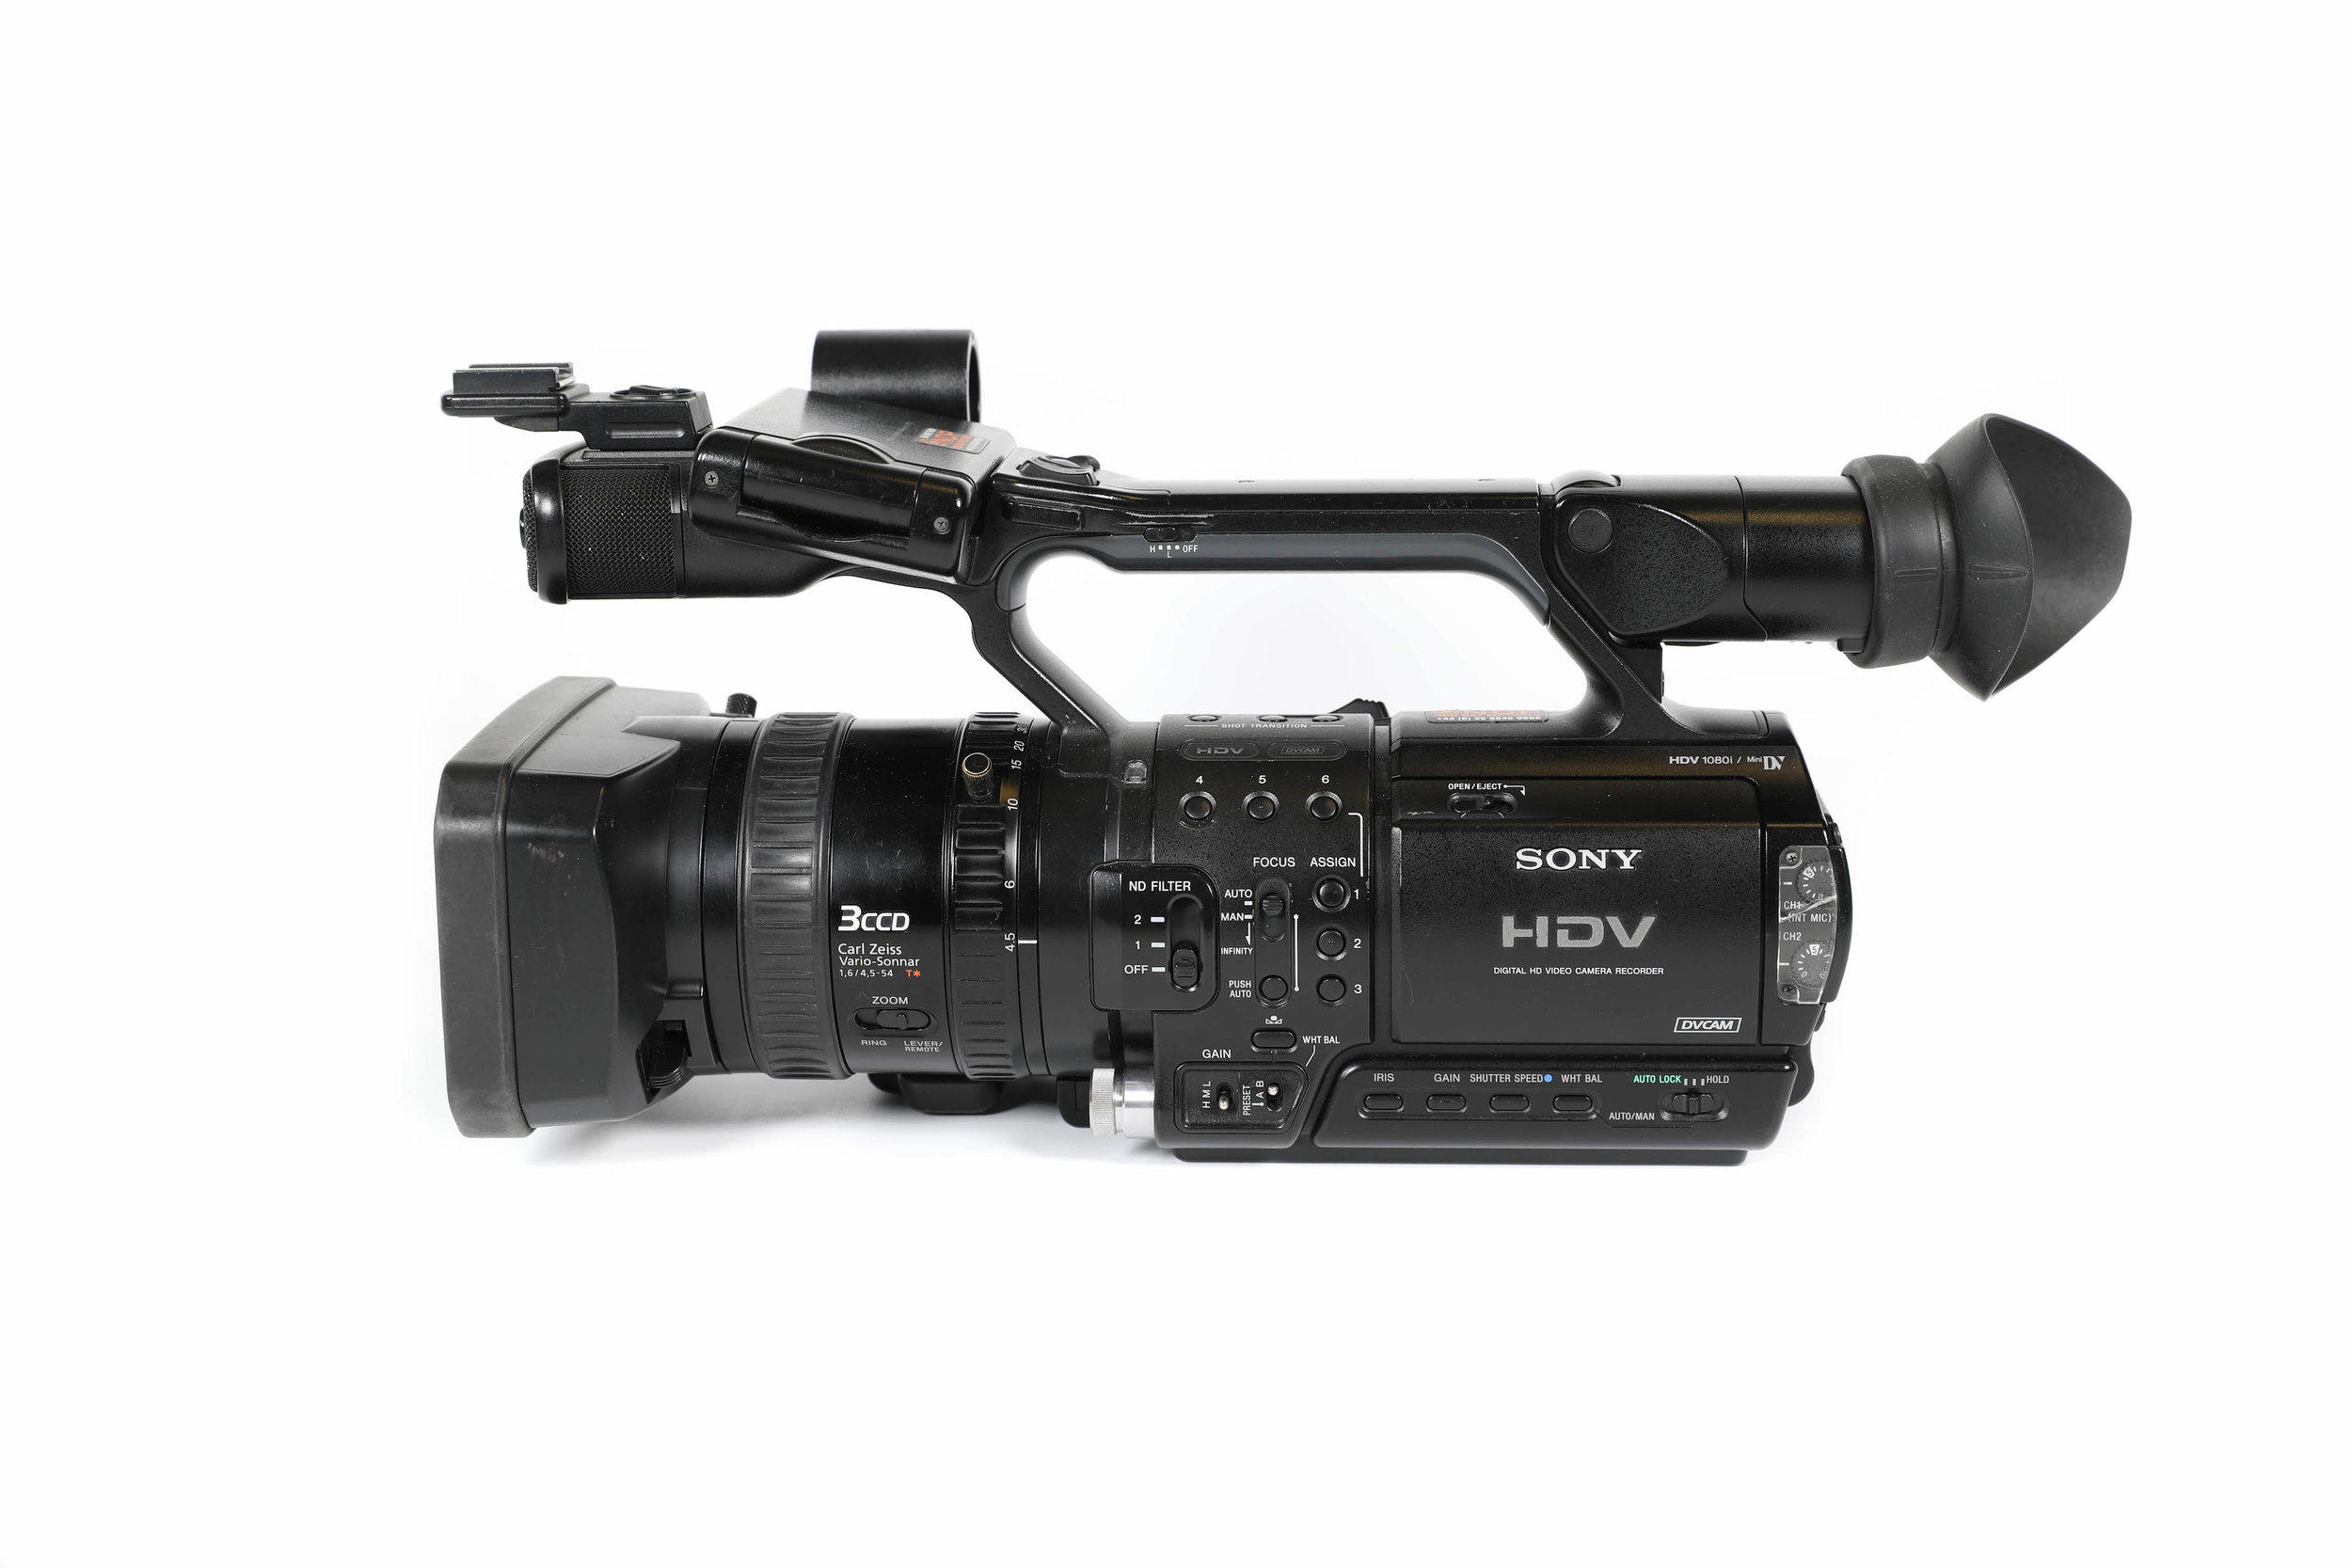 sony hvr z1e complete shooting kit hire u003cbr u003e 60 day or 225 week rh newdaypictures com sony hvr z1 manual sony hvr z1u manual pdf